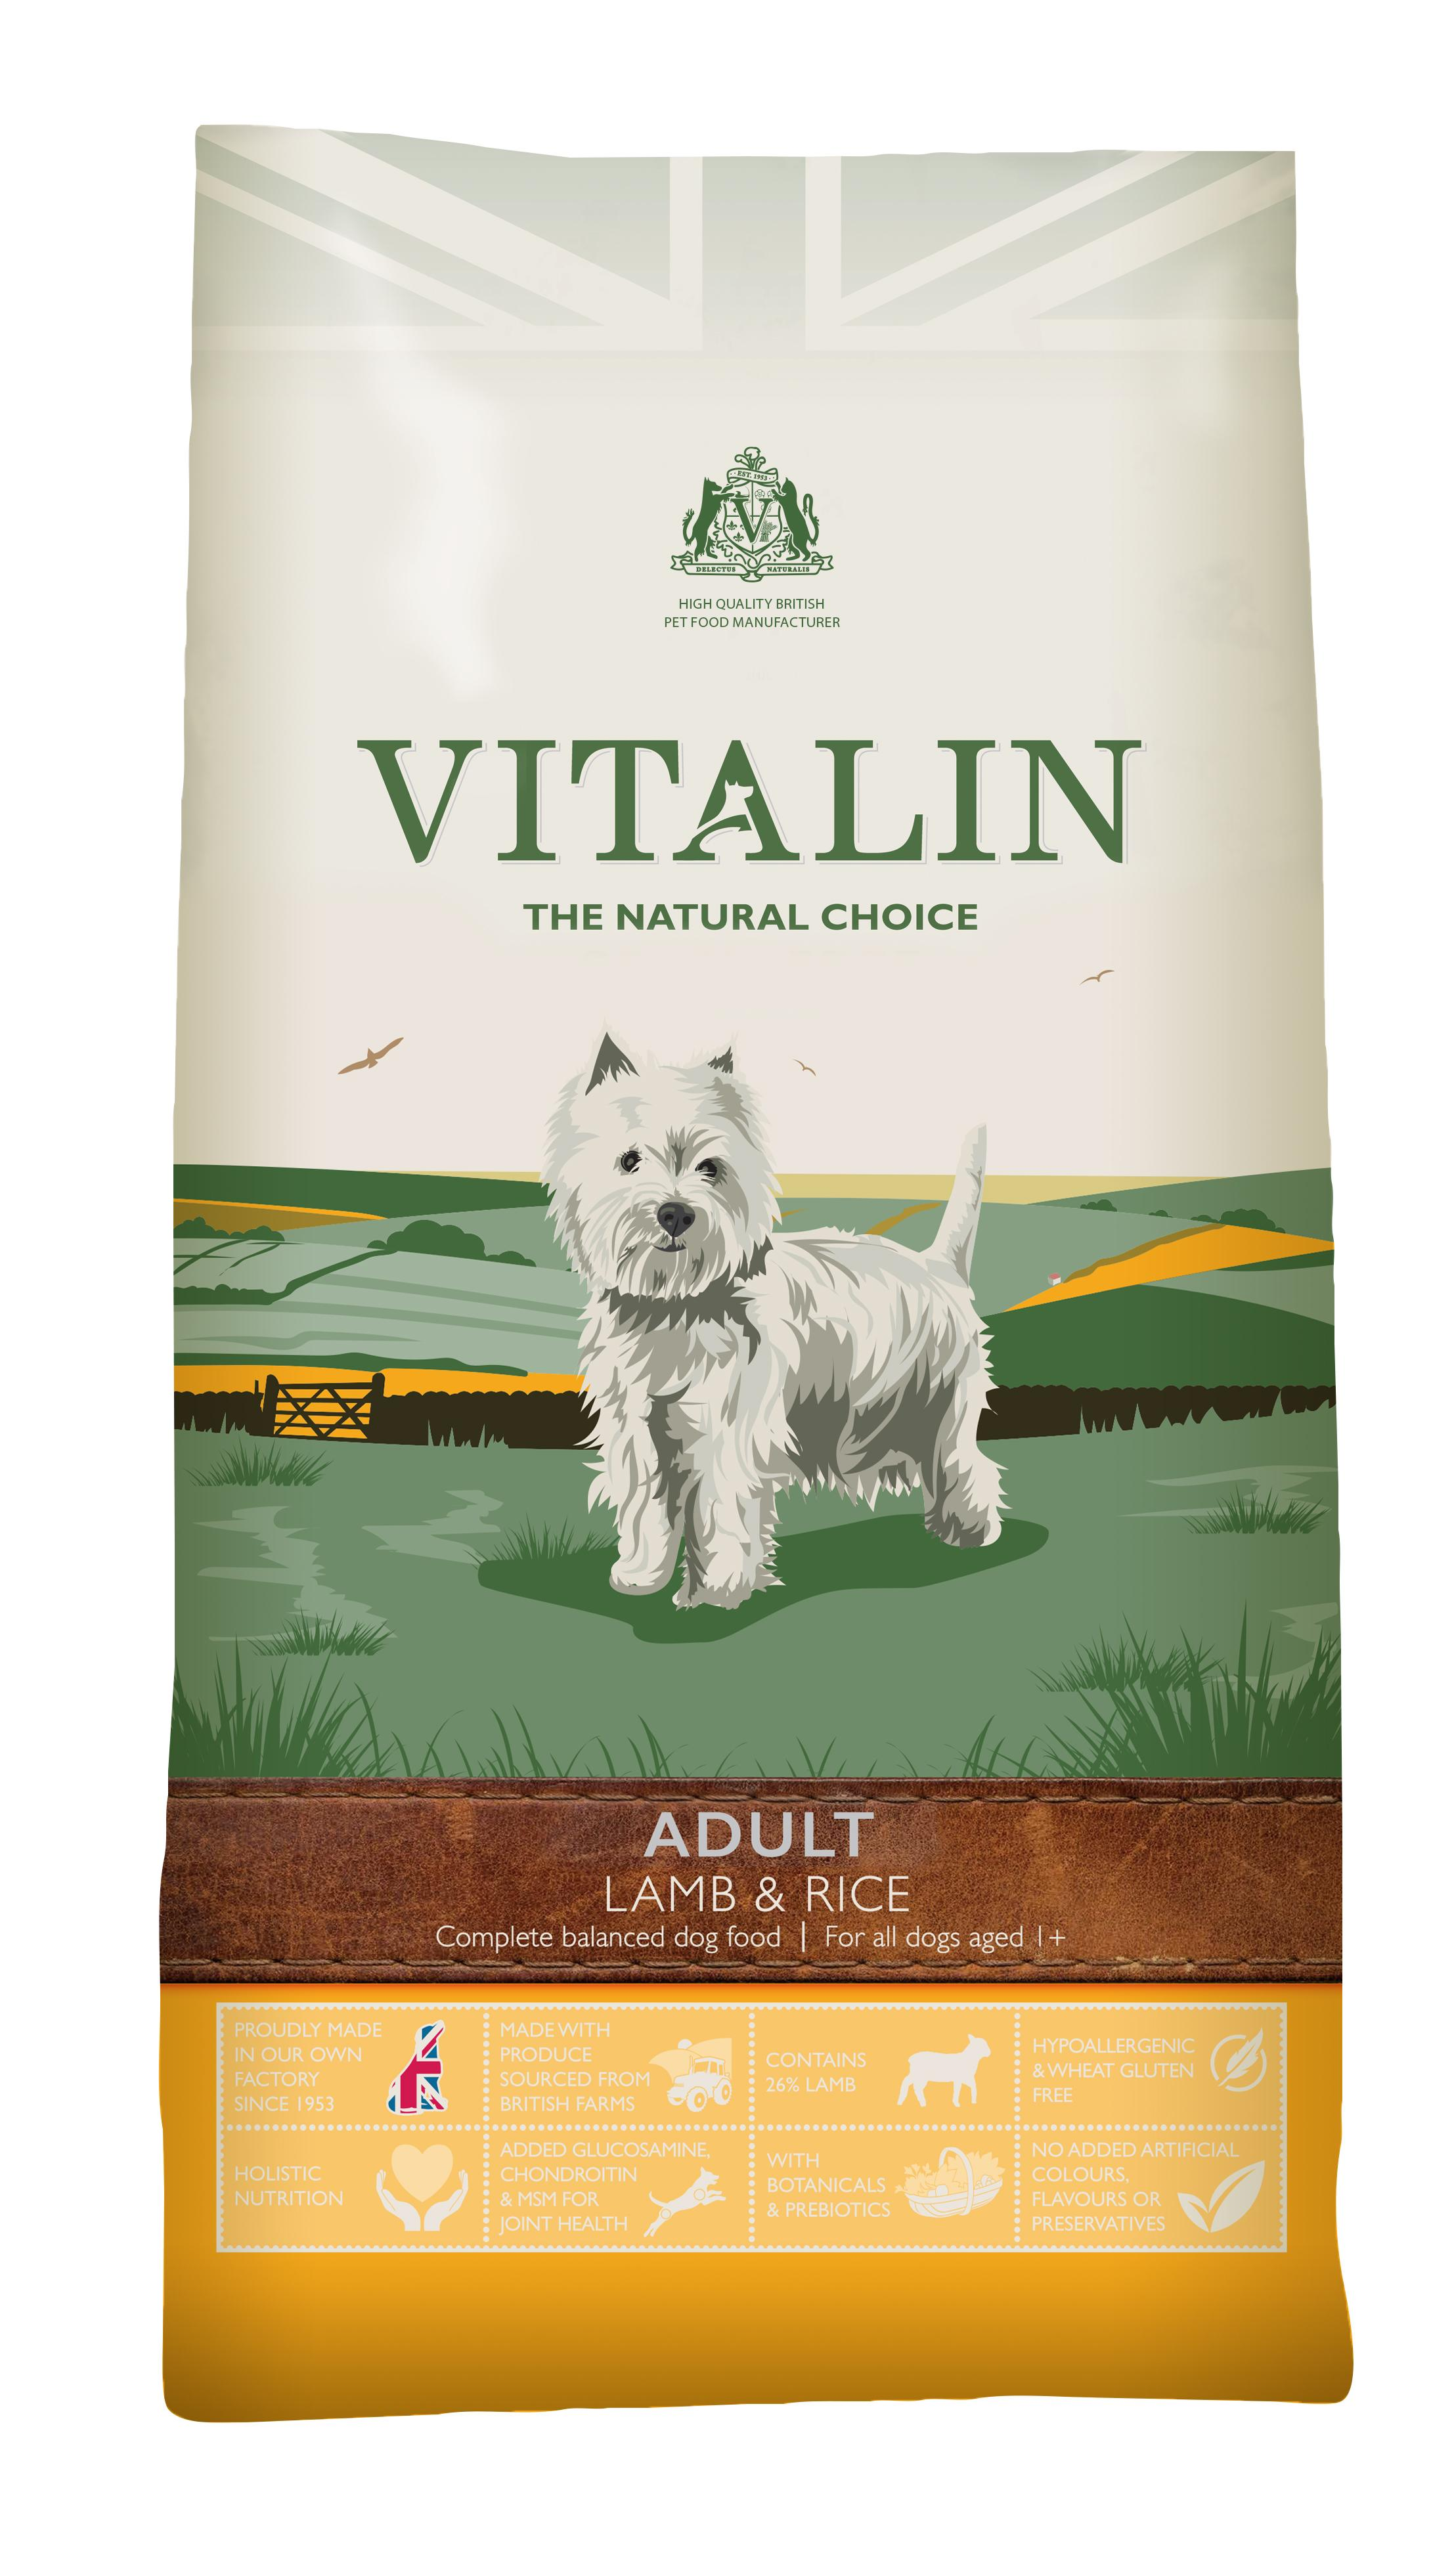 Vitalin Sensitive Lamb & Rice food